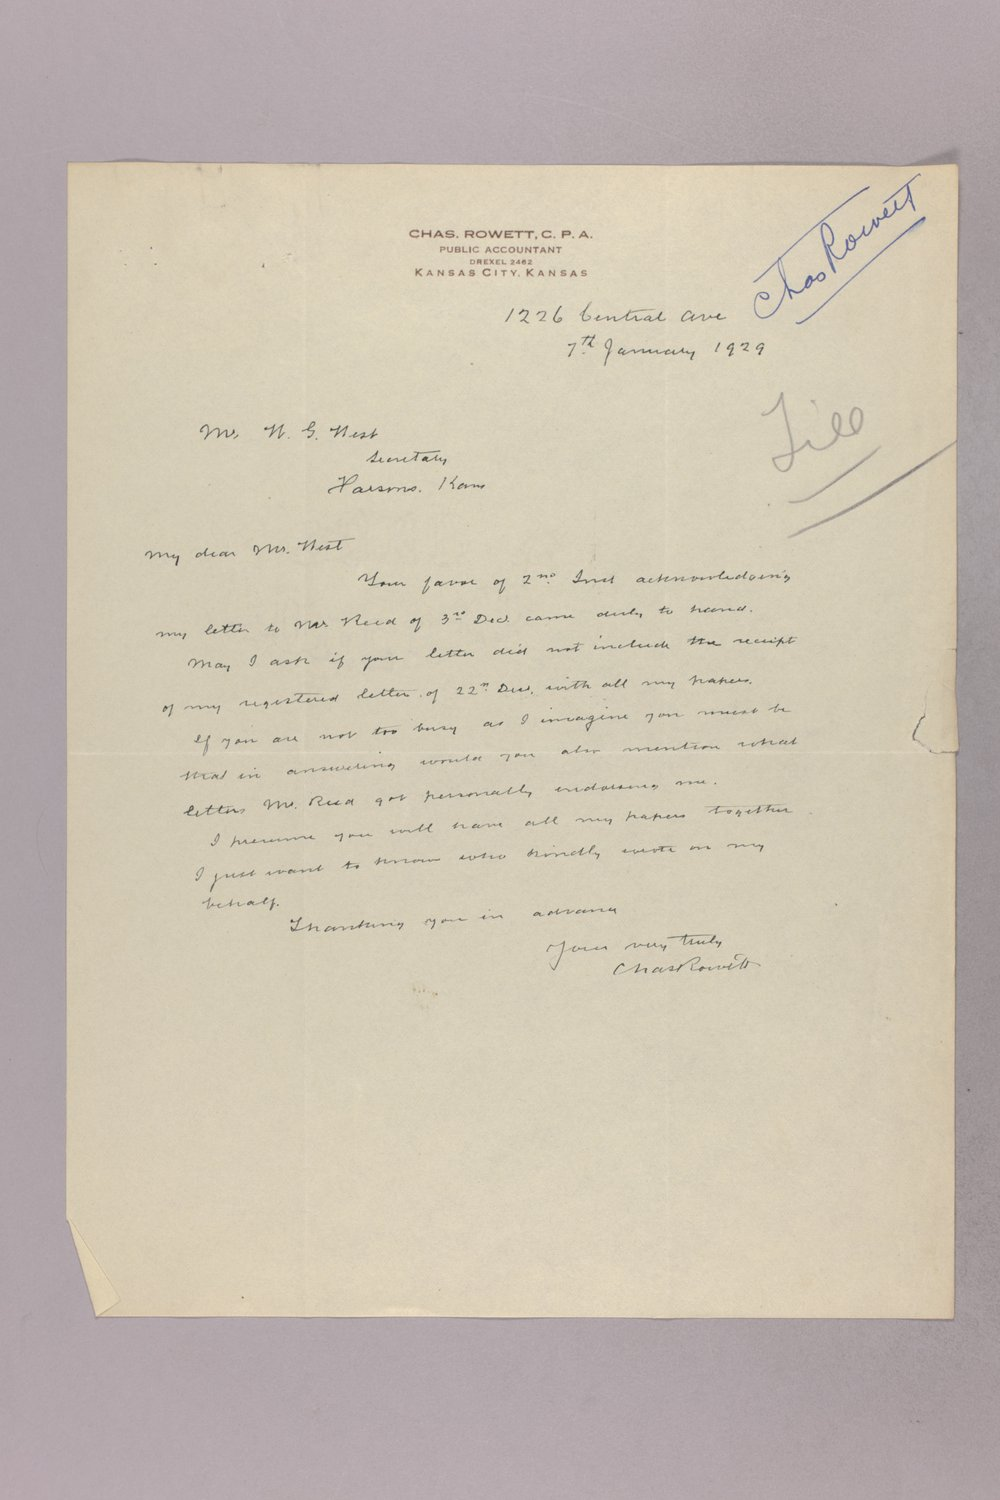 Governor Clyde M. Reed correspondence, State Accountant - 9